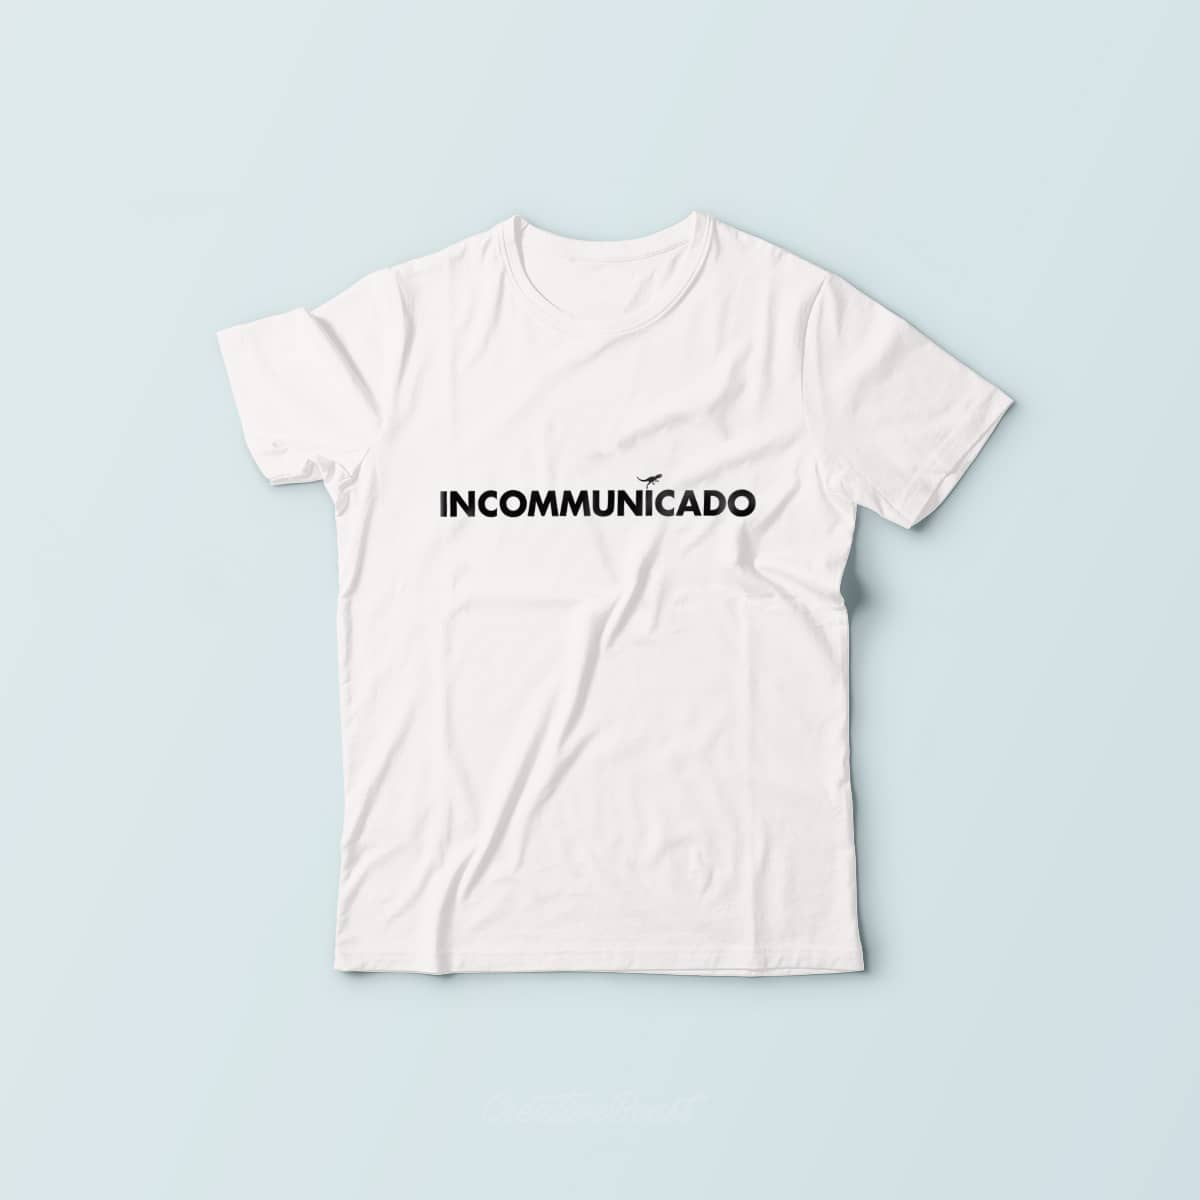 INCOMMUNICADO t-shirt by Creative Beast